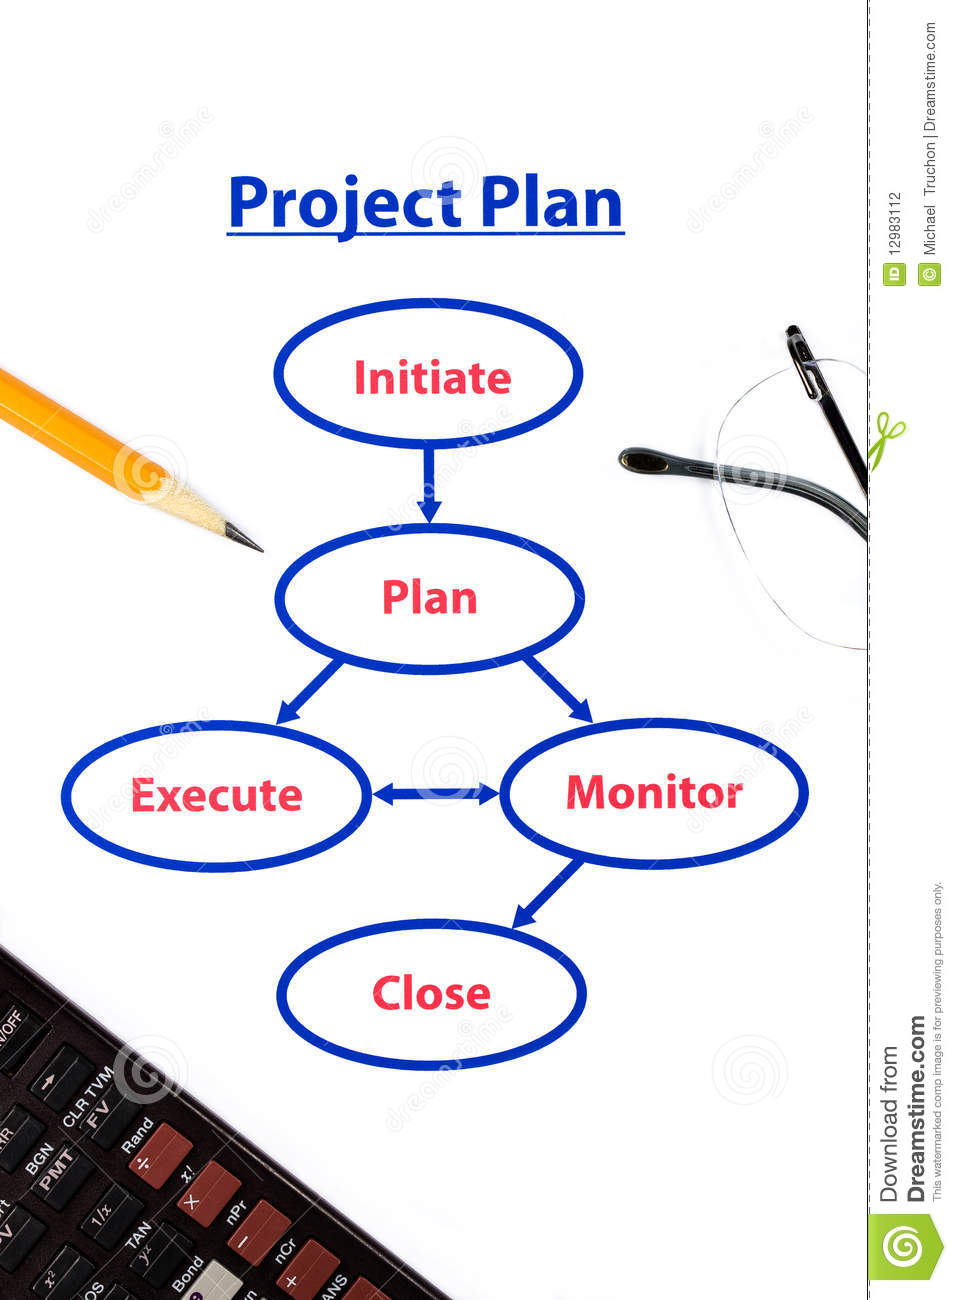 project plan process stock photography image 12983112 b define process flow chart i 9 process flow chart